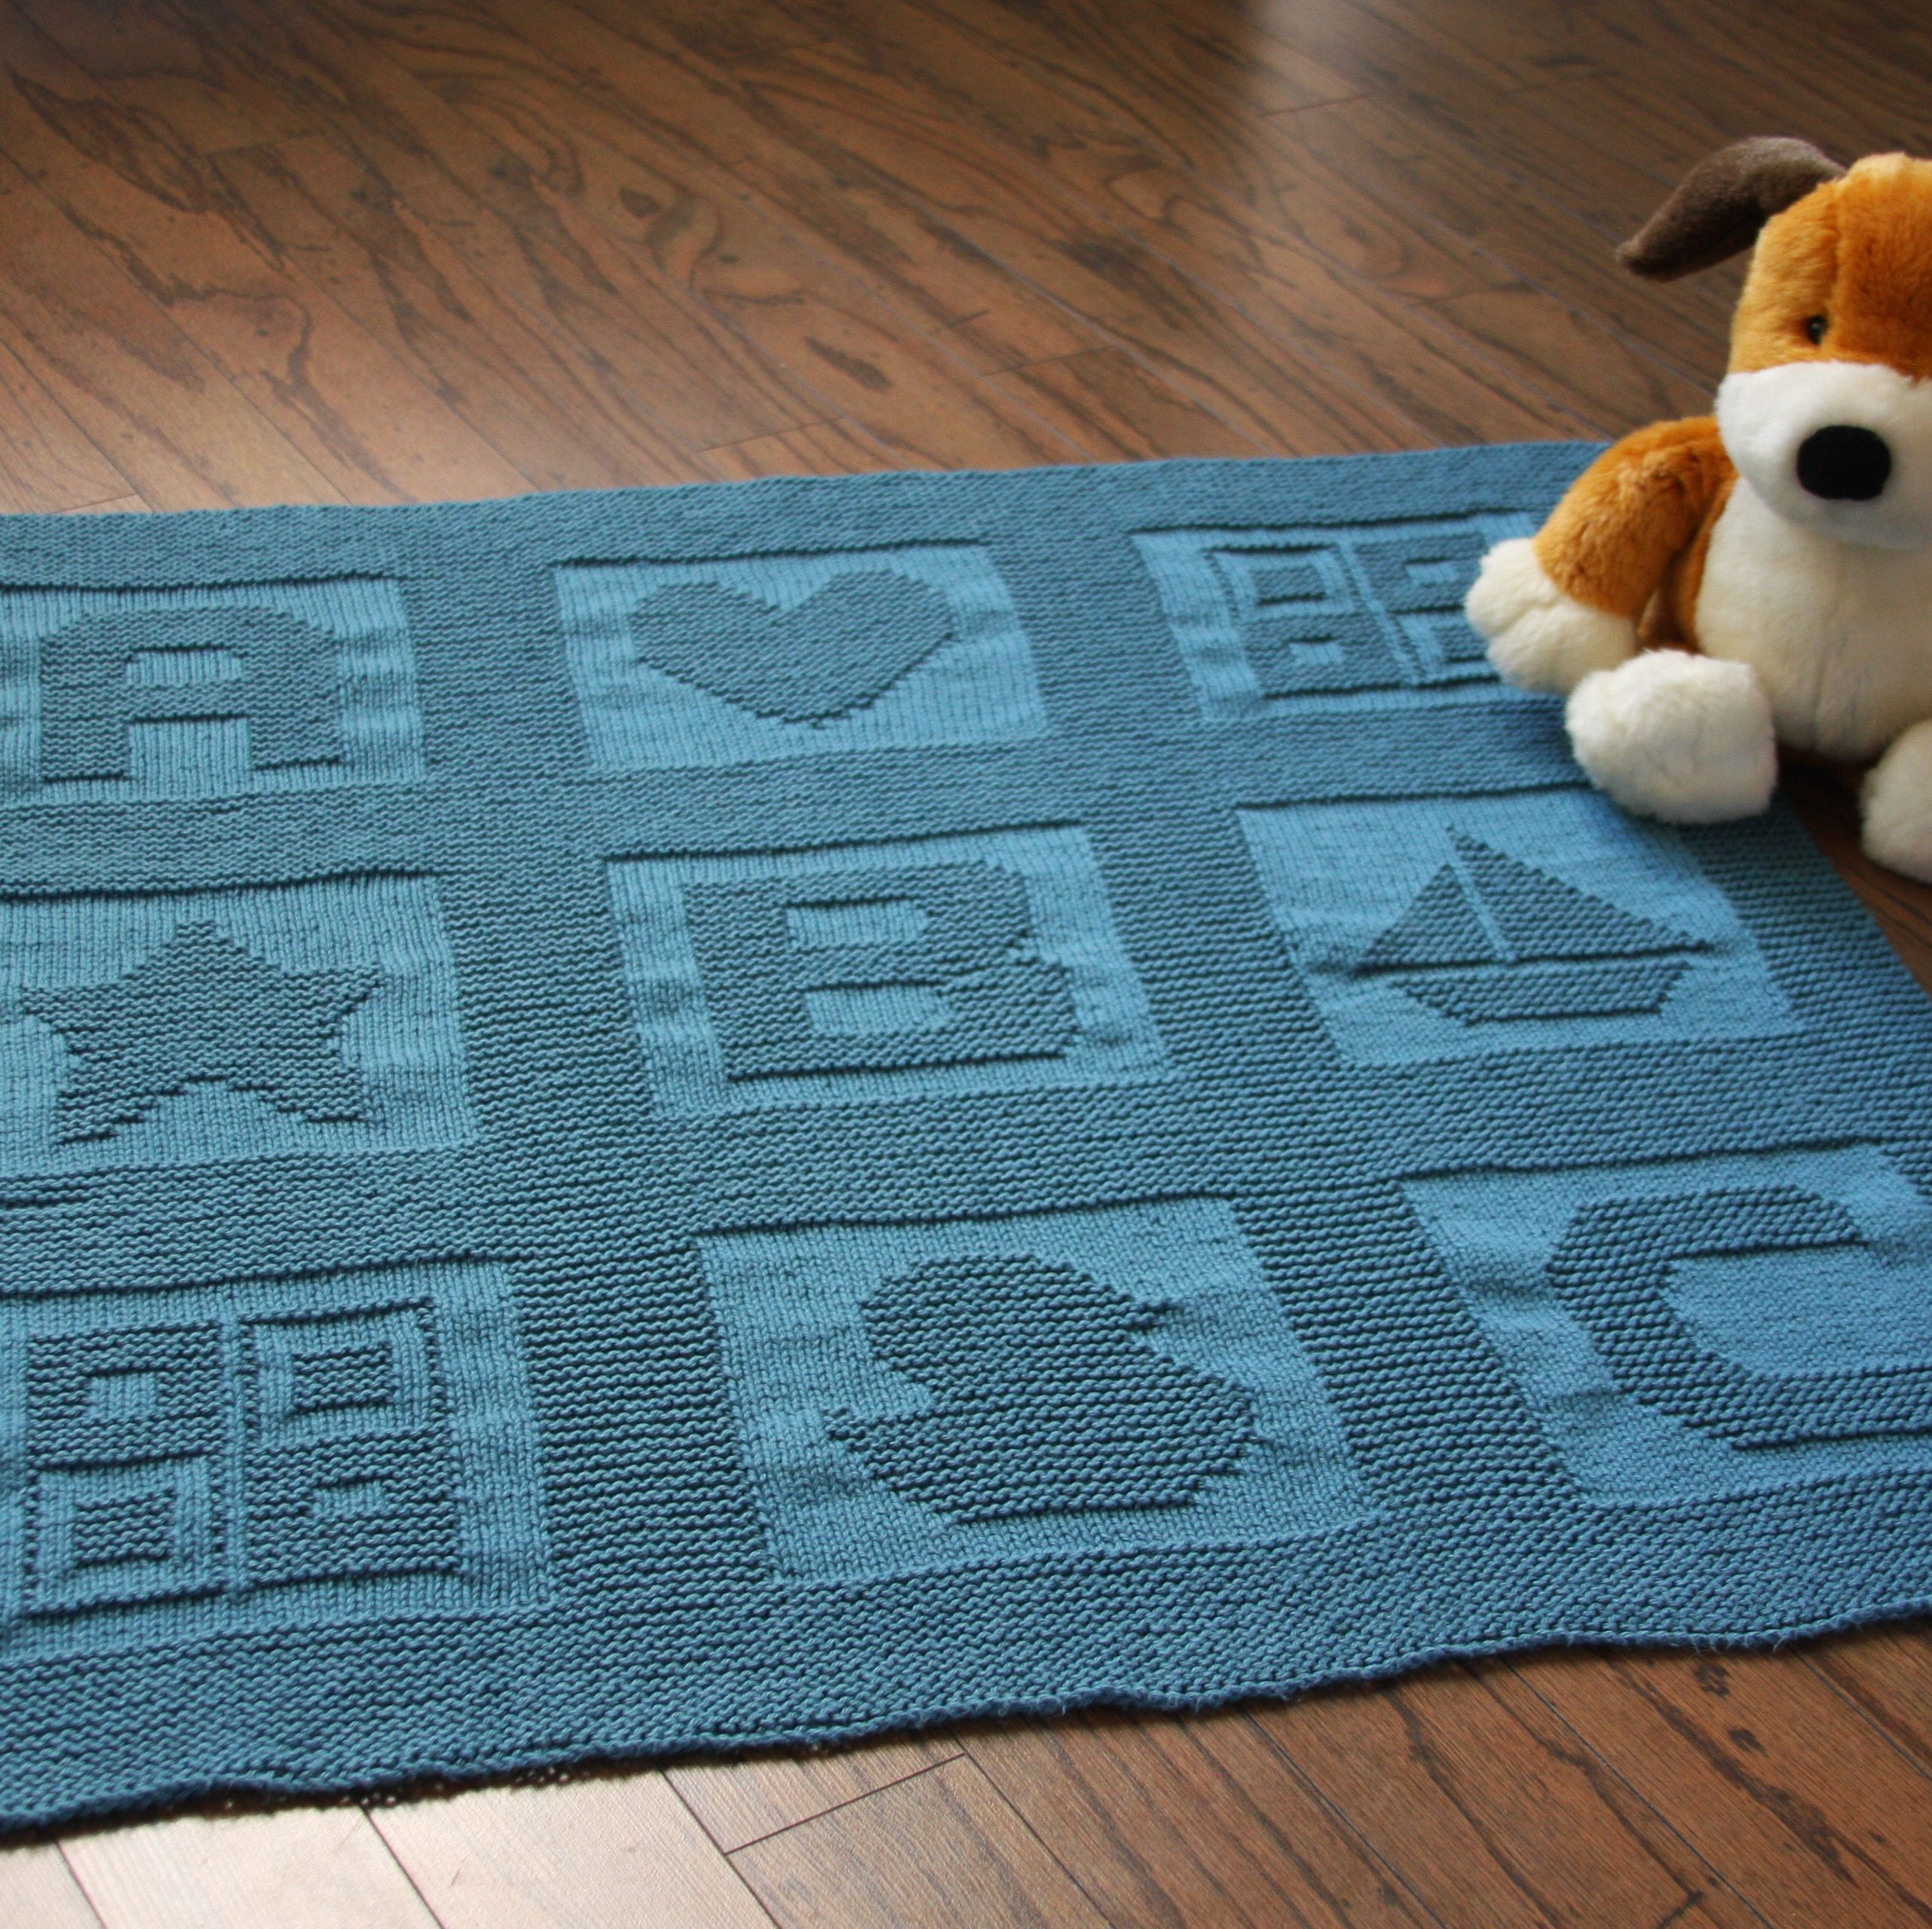 Available for free through Knit Picks.com, this ABC Baby Blanket is ...